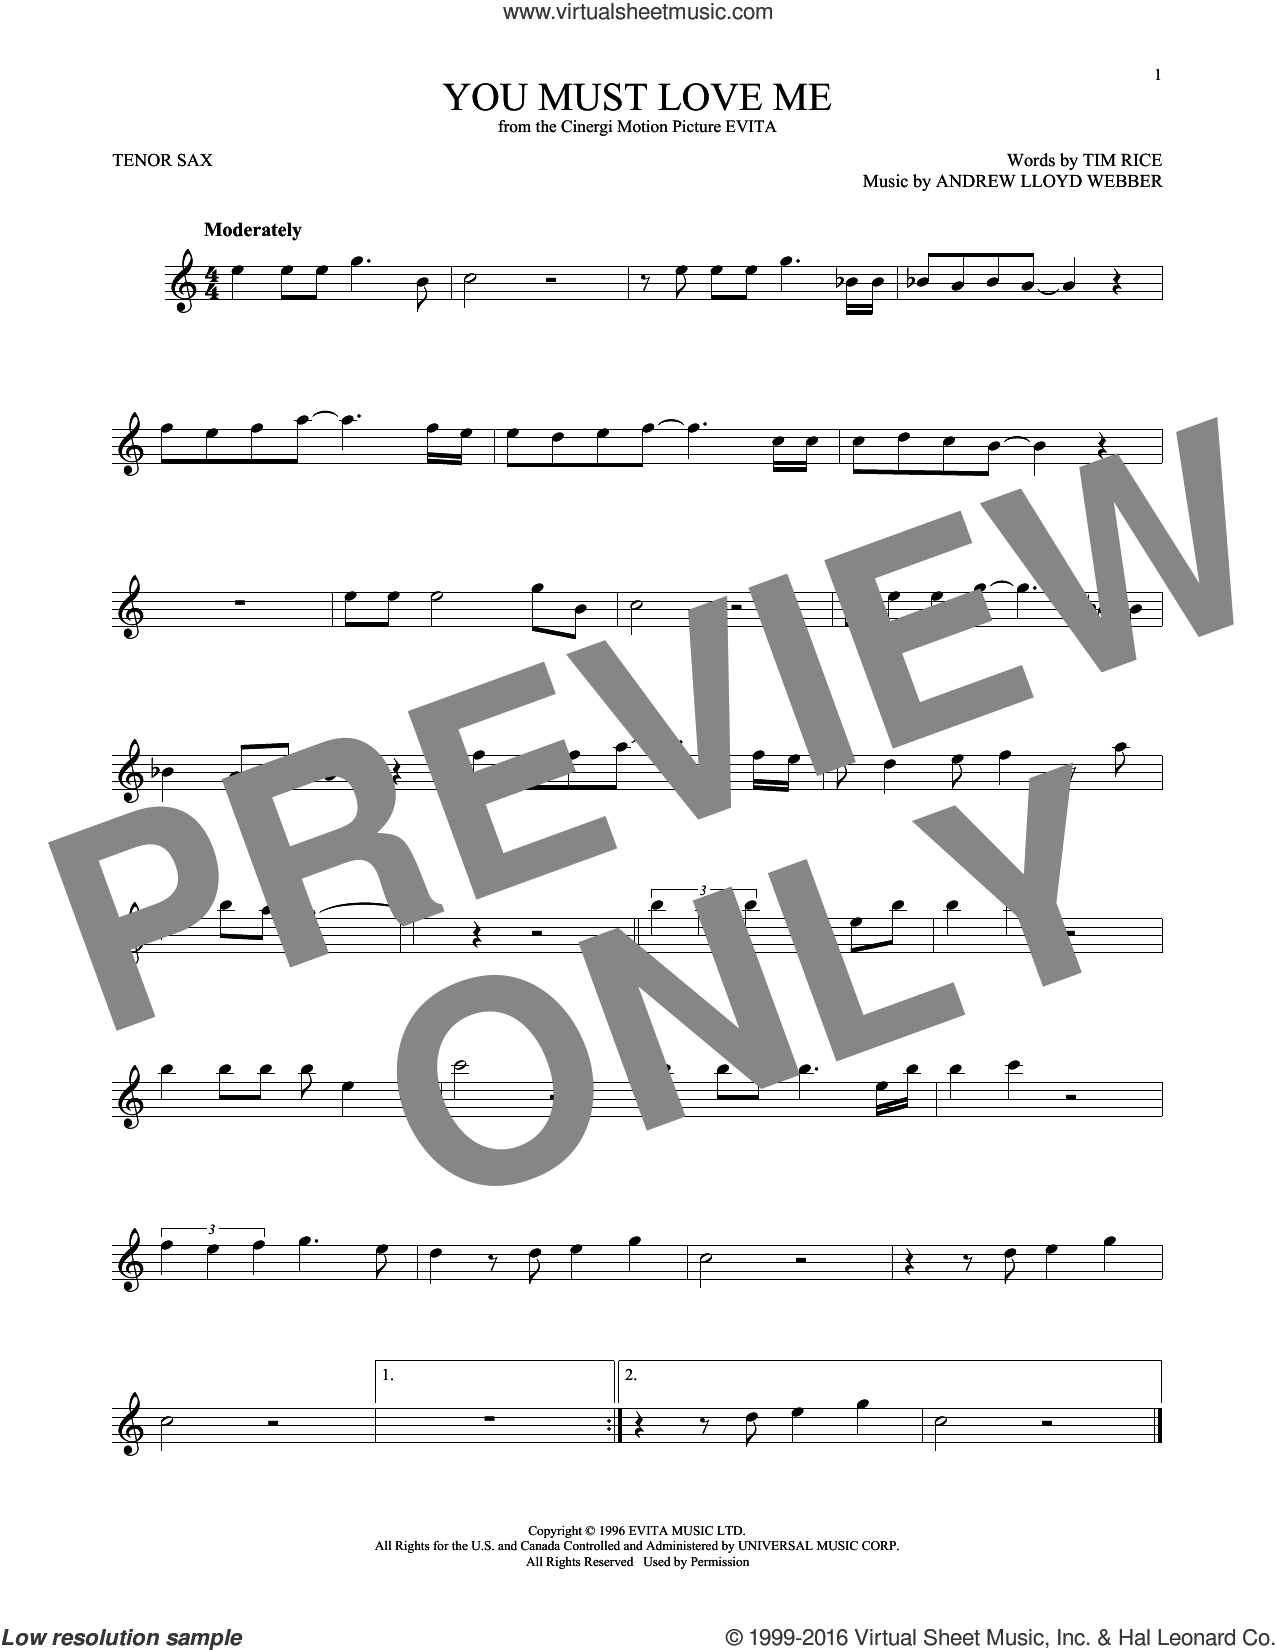 You Must Love Me (from Evita) sheet music for tenor saxophone solo by Andrew Lloyd Webber, Madonna and Tim Rice, intermediate skill level